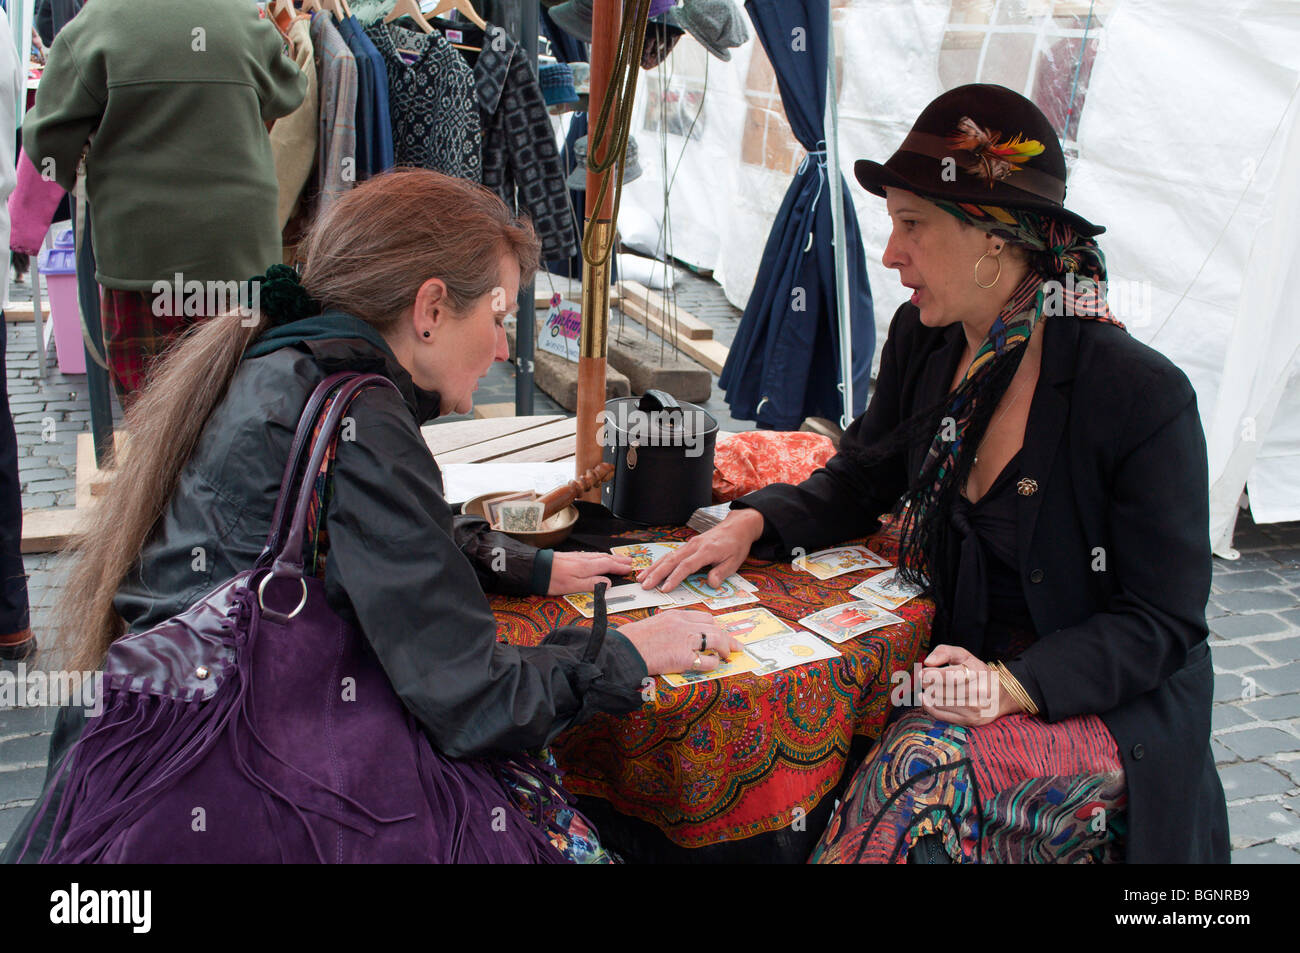 St James's Fair Kelso Scotland - a tarot card fortune reading - Stock Image